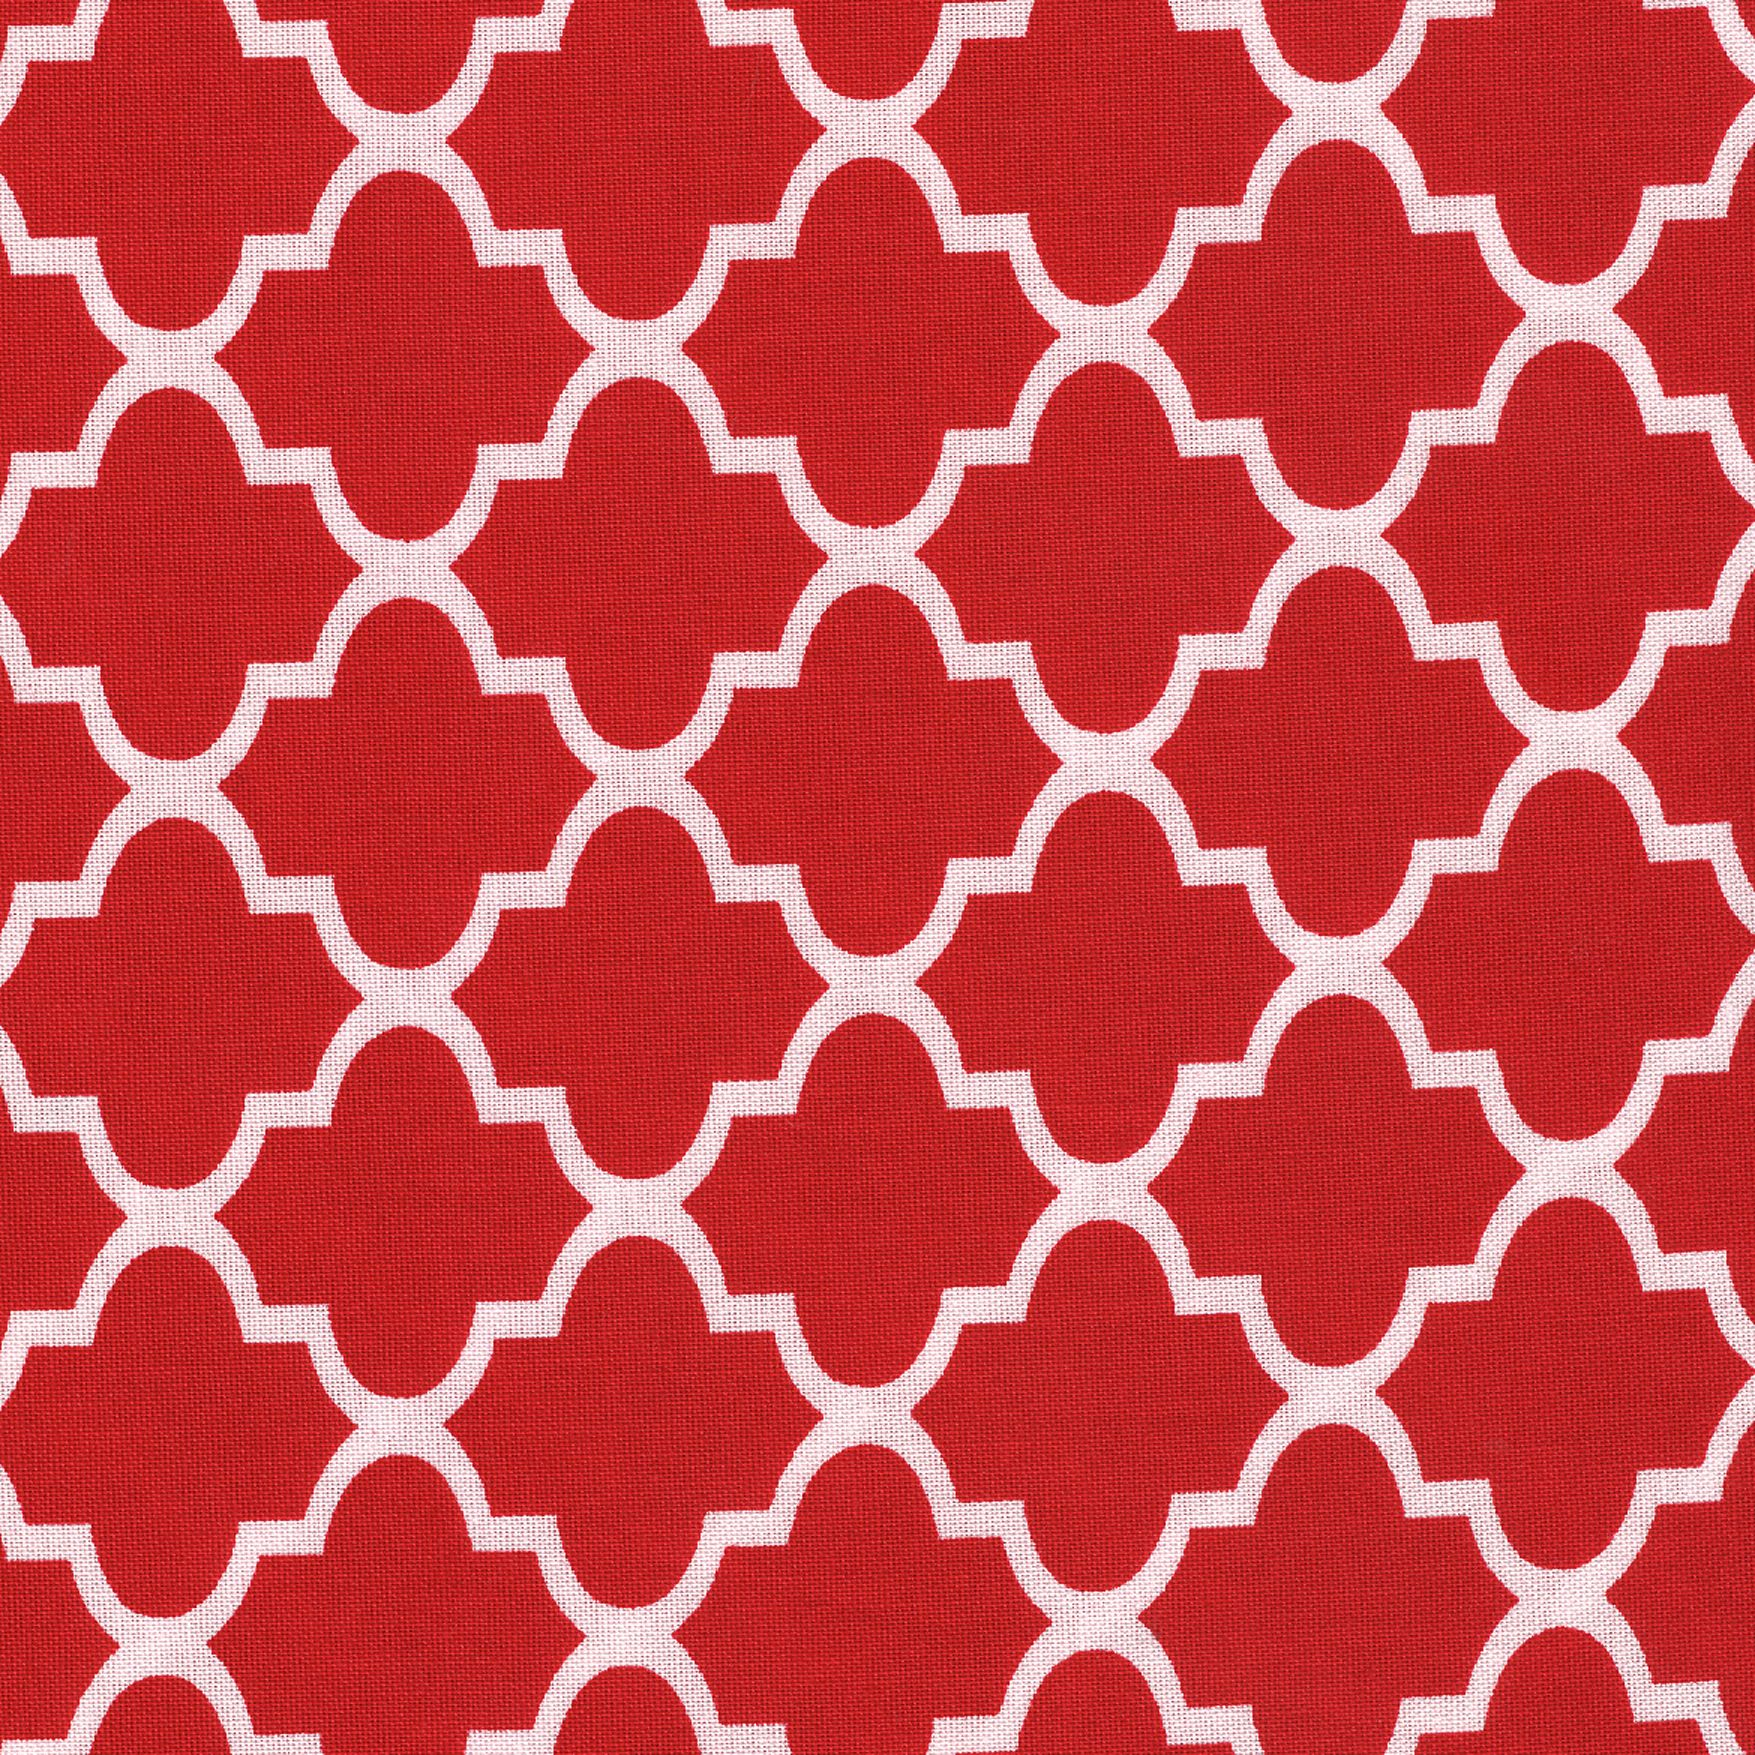 SHASON TEXTILE (3 Yards cut) 100% COTTON PRINT QUILTING FABRIC, RED / WHITE TWIST